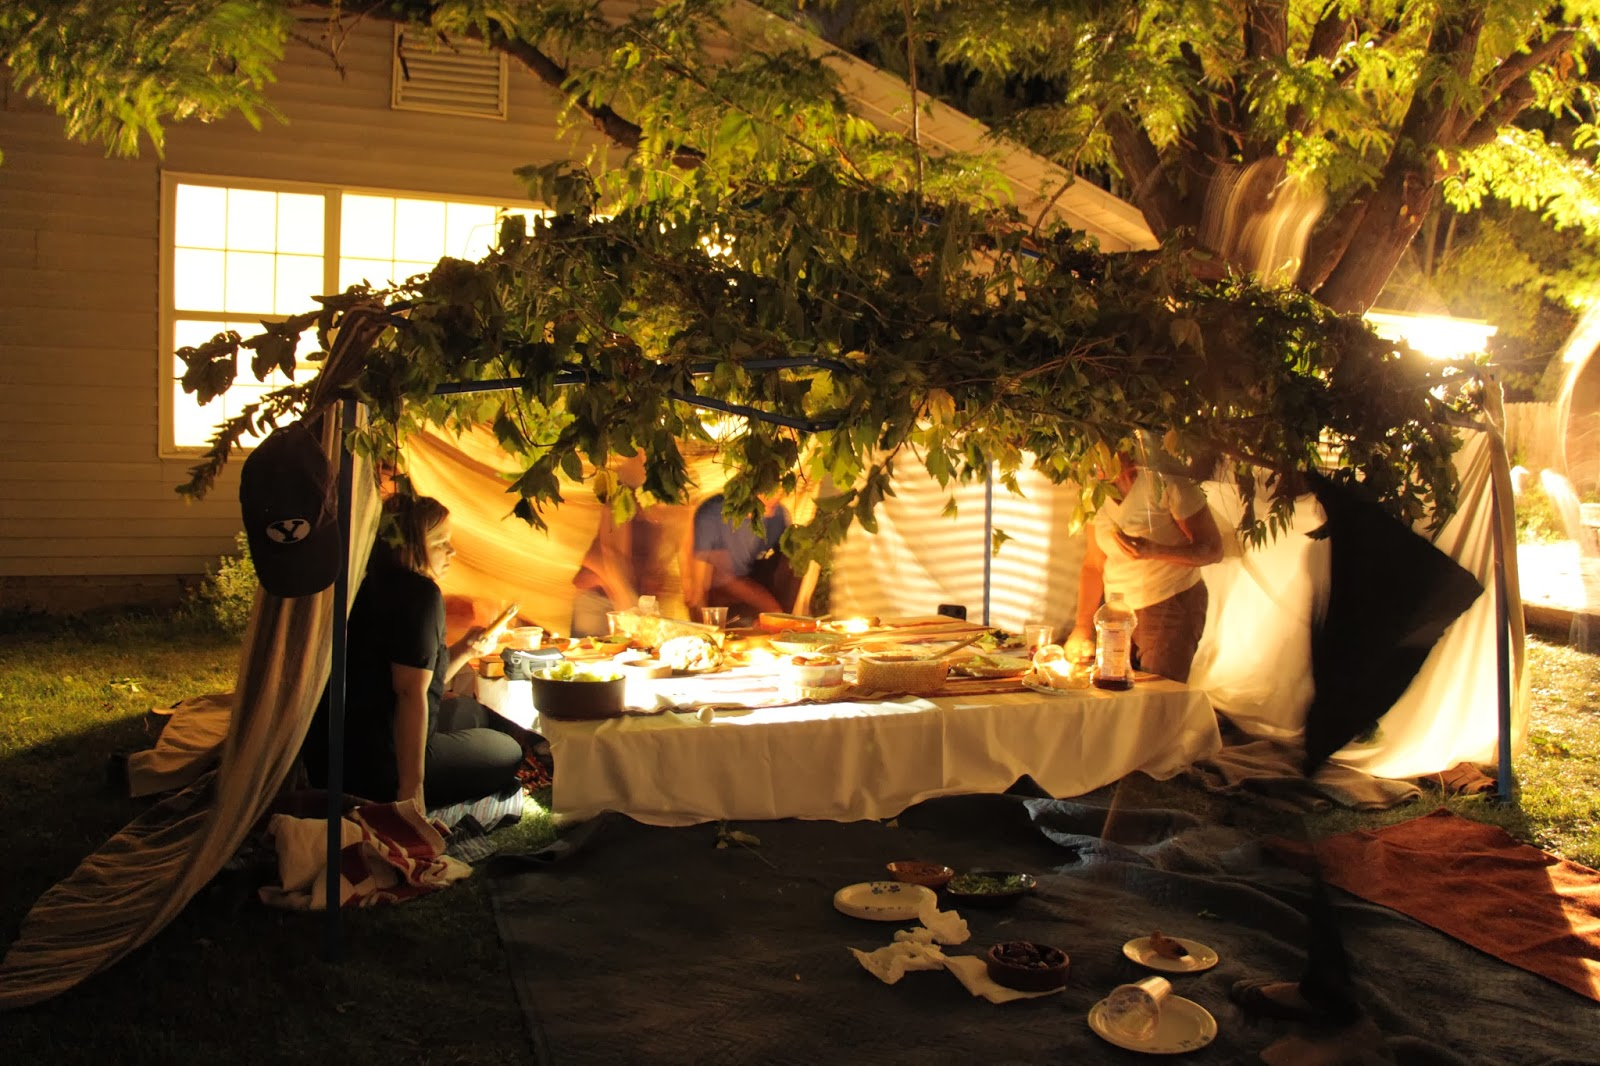 Cleaning up the dinner table & Redeemer of Israel: Feast of Tabernacles (Sukkot) 2013